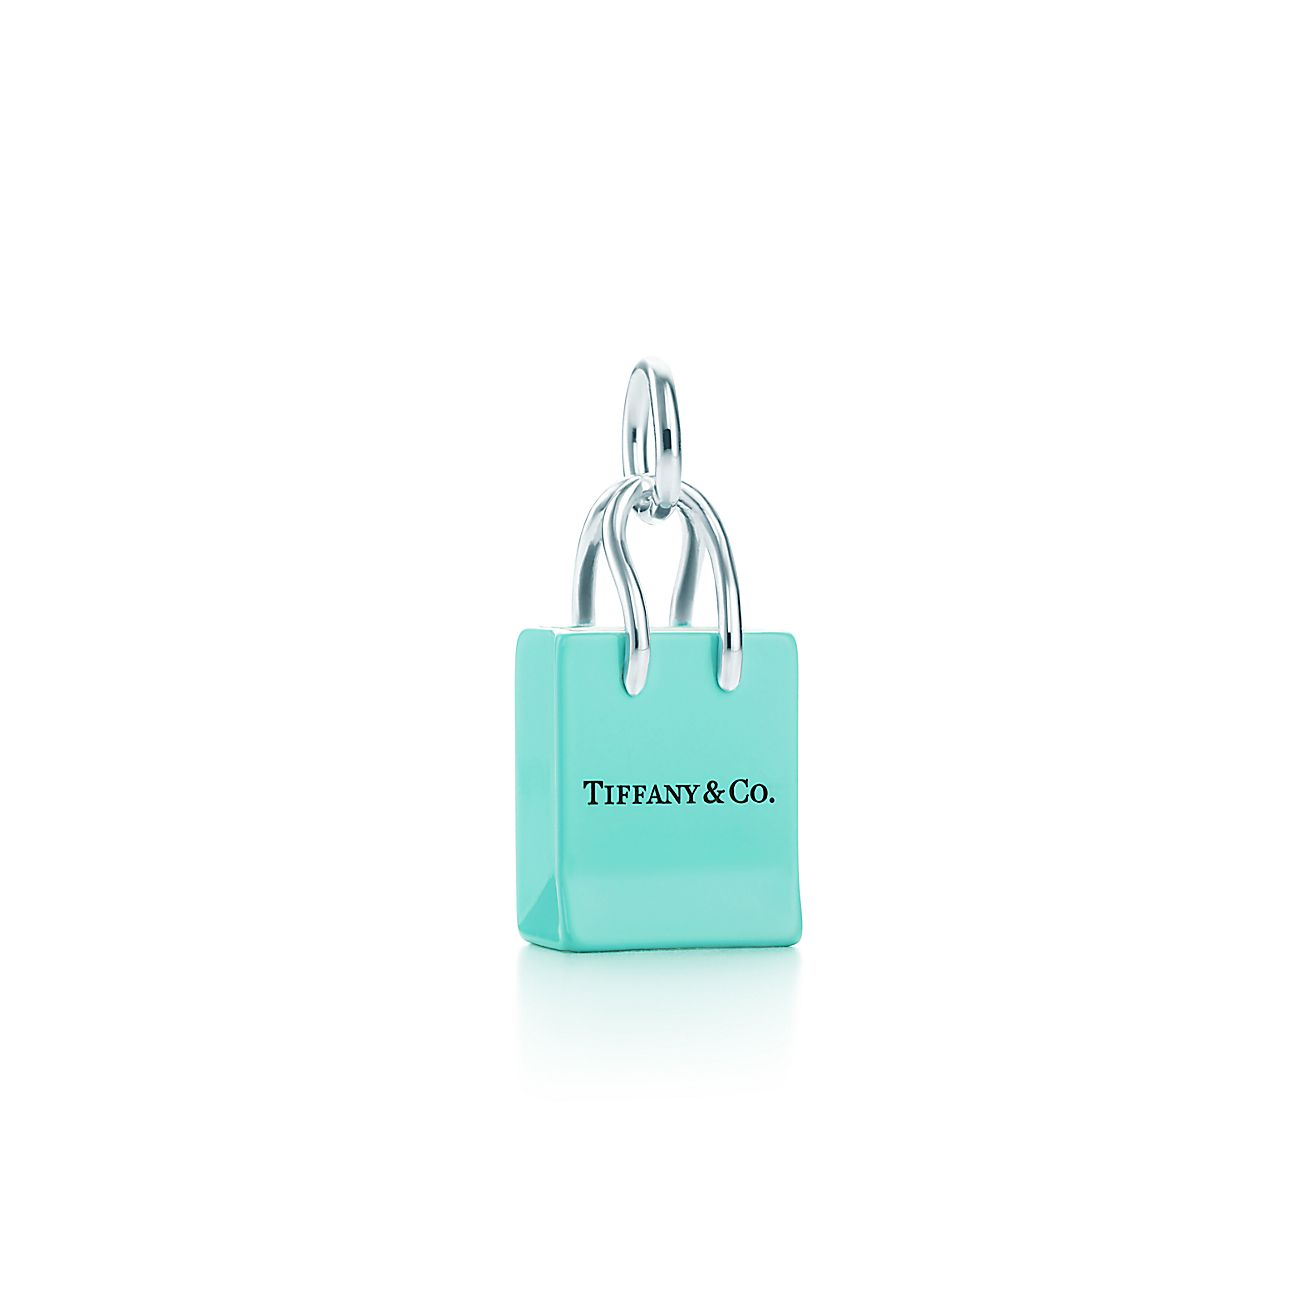 Tiffany Co Ping Bag Charm In